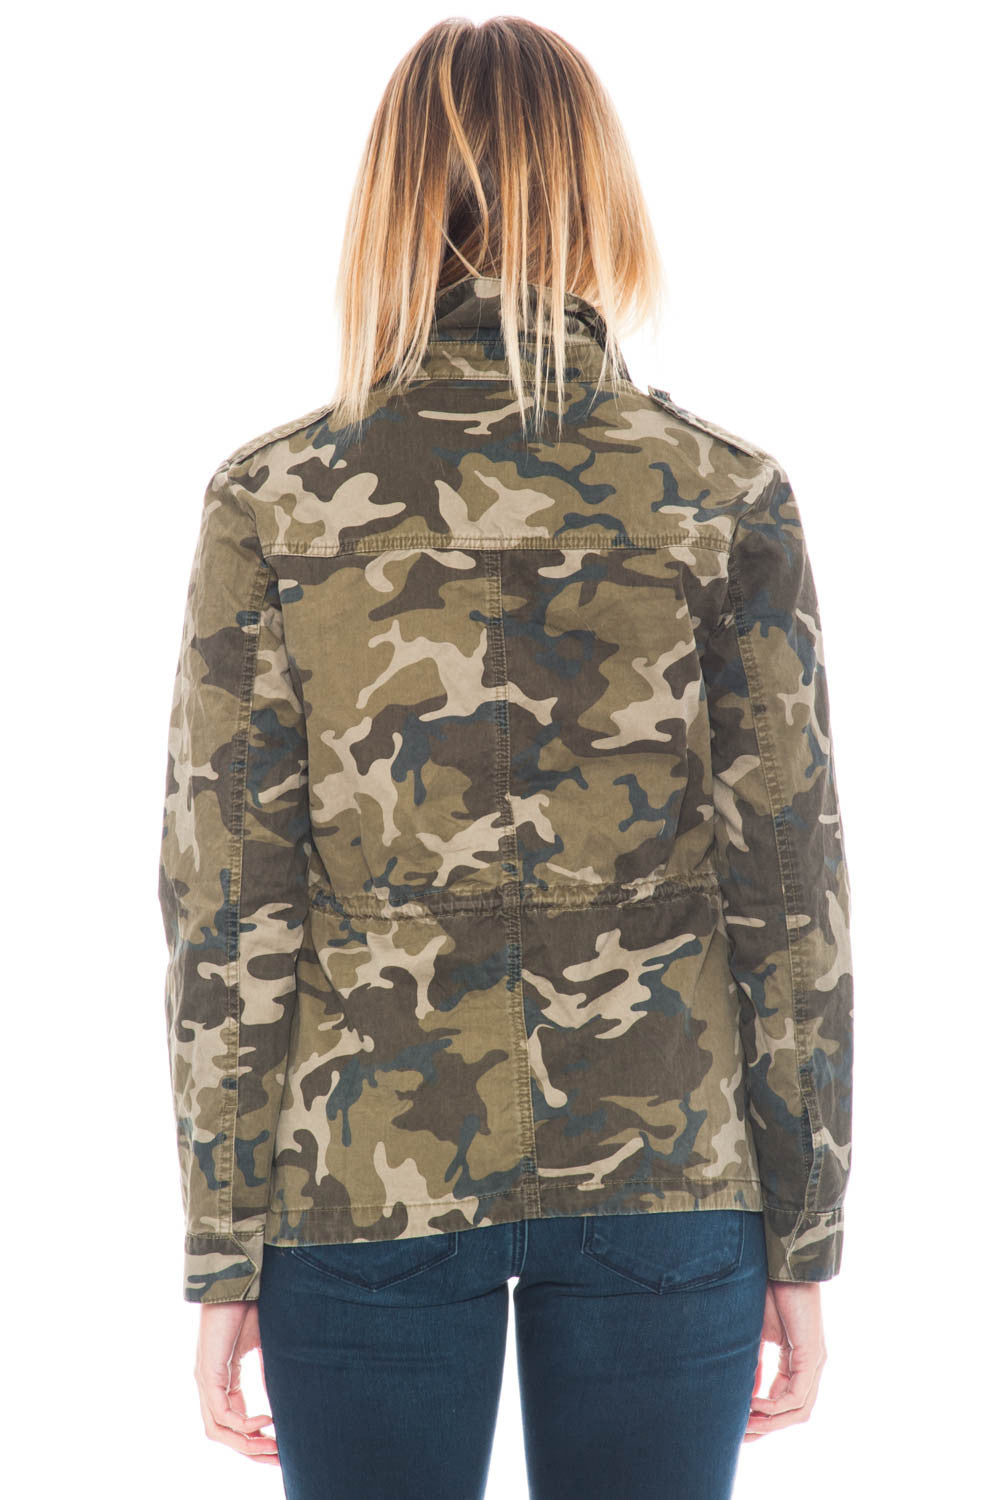 Jacket - Distressed Camo Utility with gold hardware